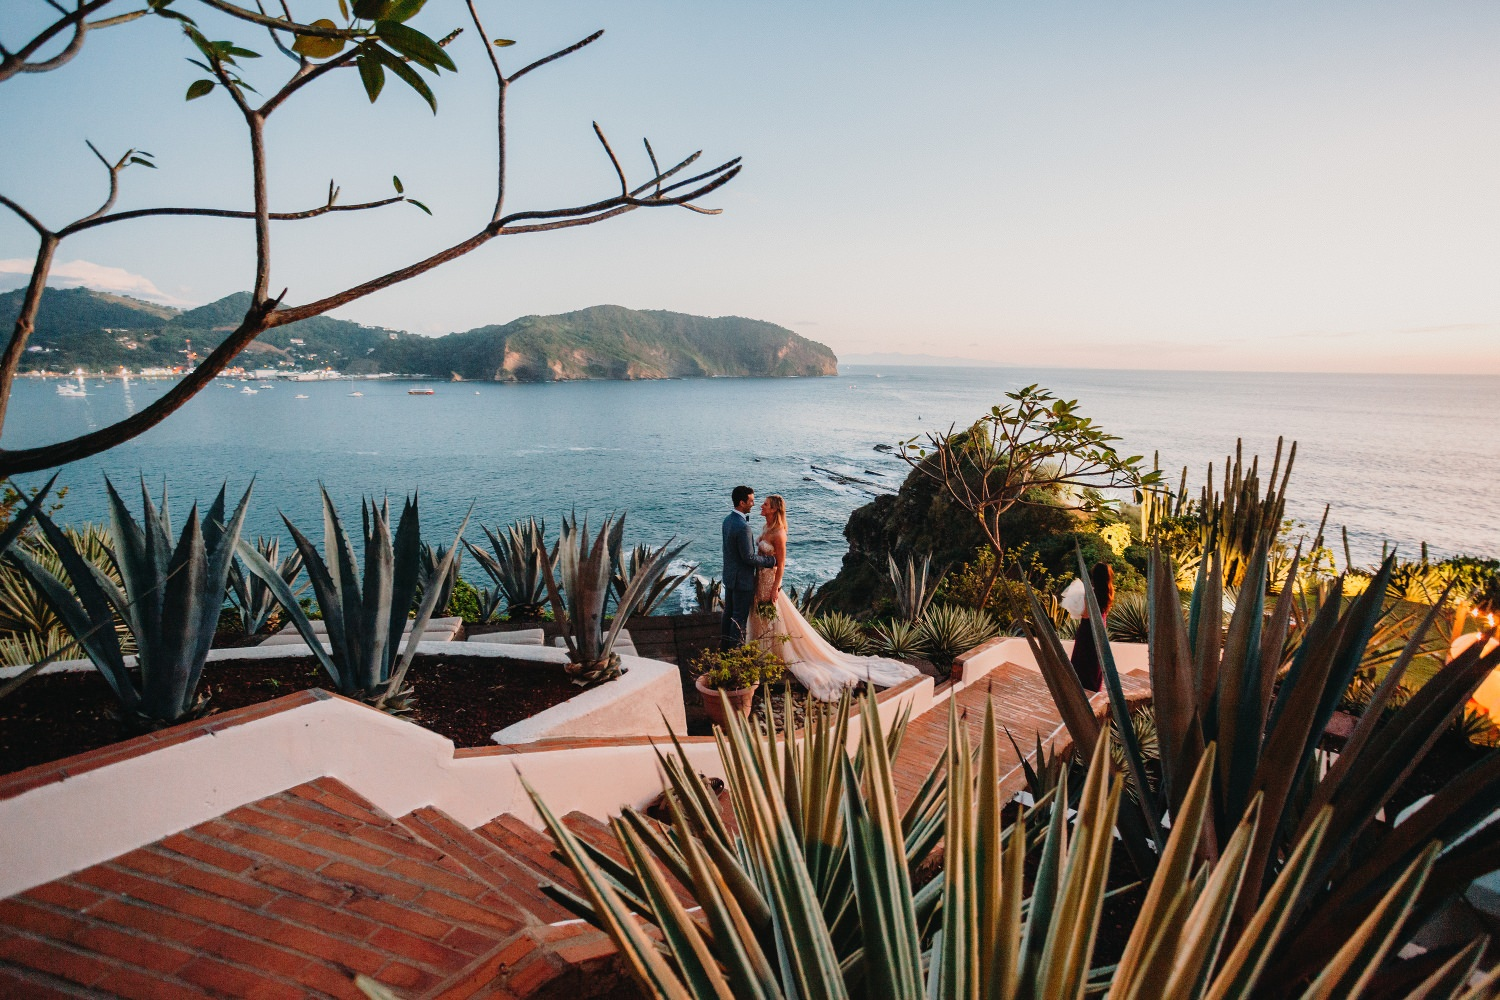 Best wedding venues in Costa Rica and Nicaragua. Christian & Dana Beach wedding photographed by Kuba Okon - destination wedding photographer based in Costa Rica.